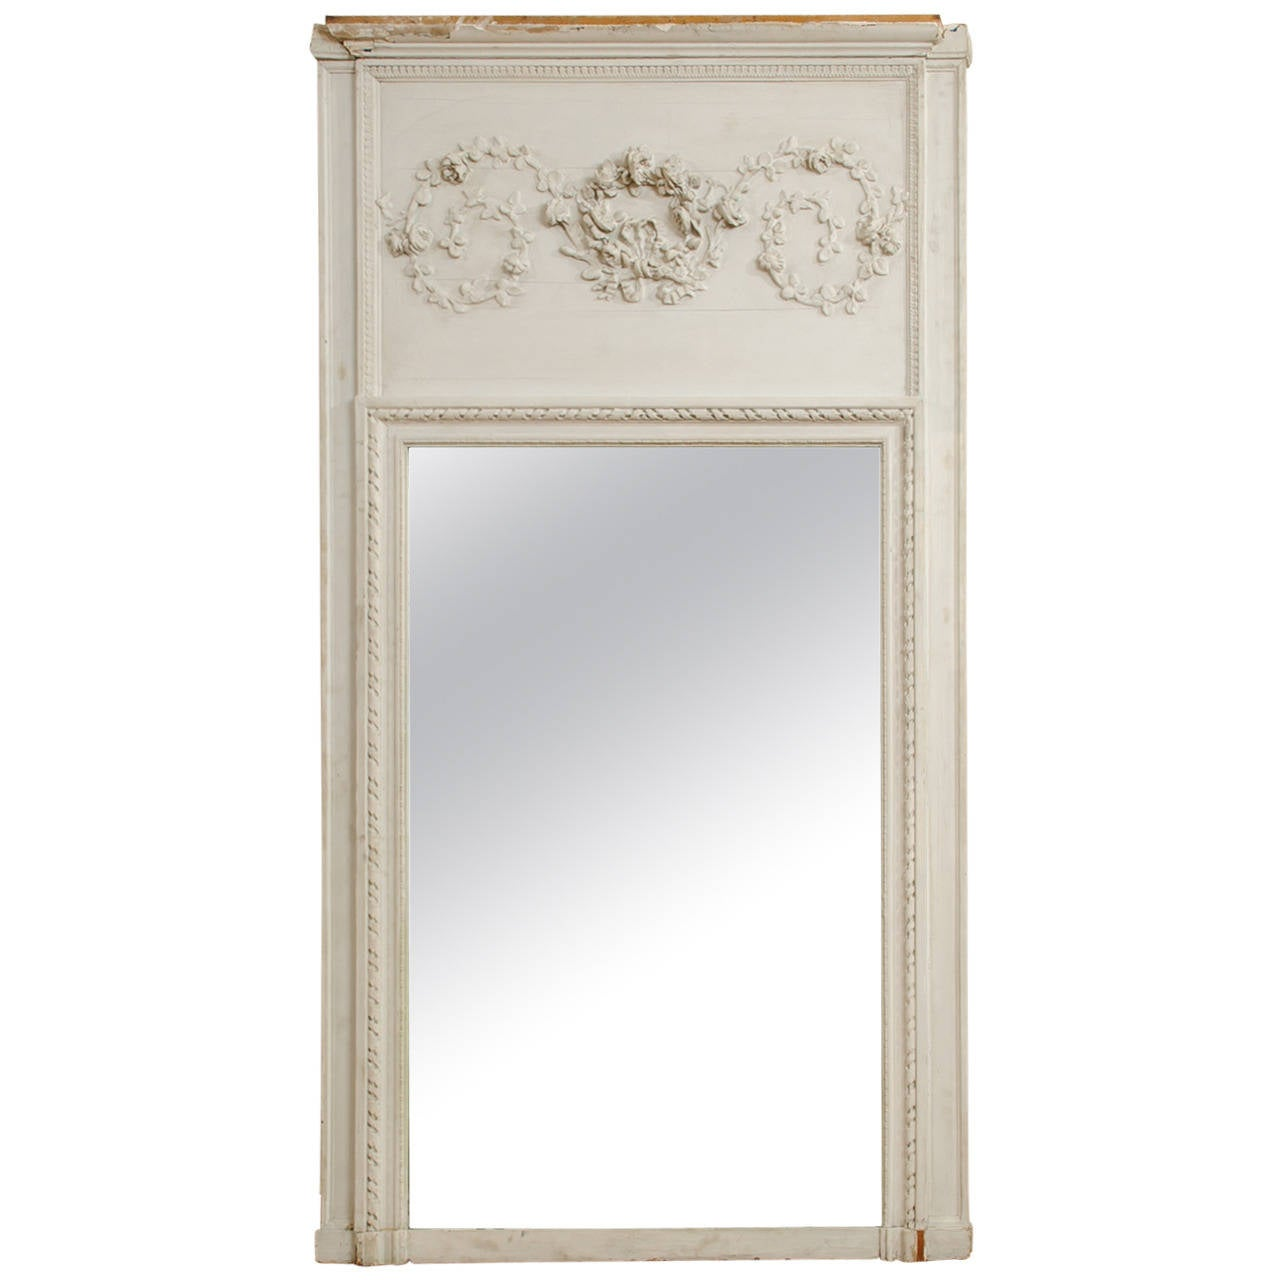 8th century louis xvi trumeau mirror 2 france for sale at 1stdibs. Black Bedroom Furniture Sets. Home Design Ideas